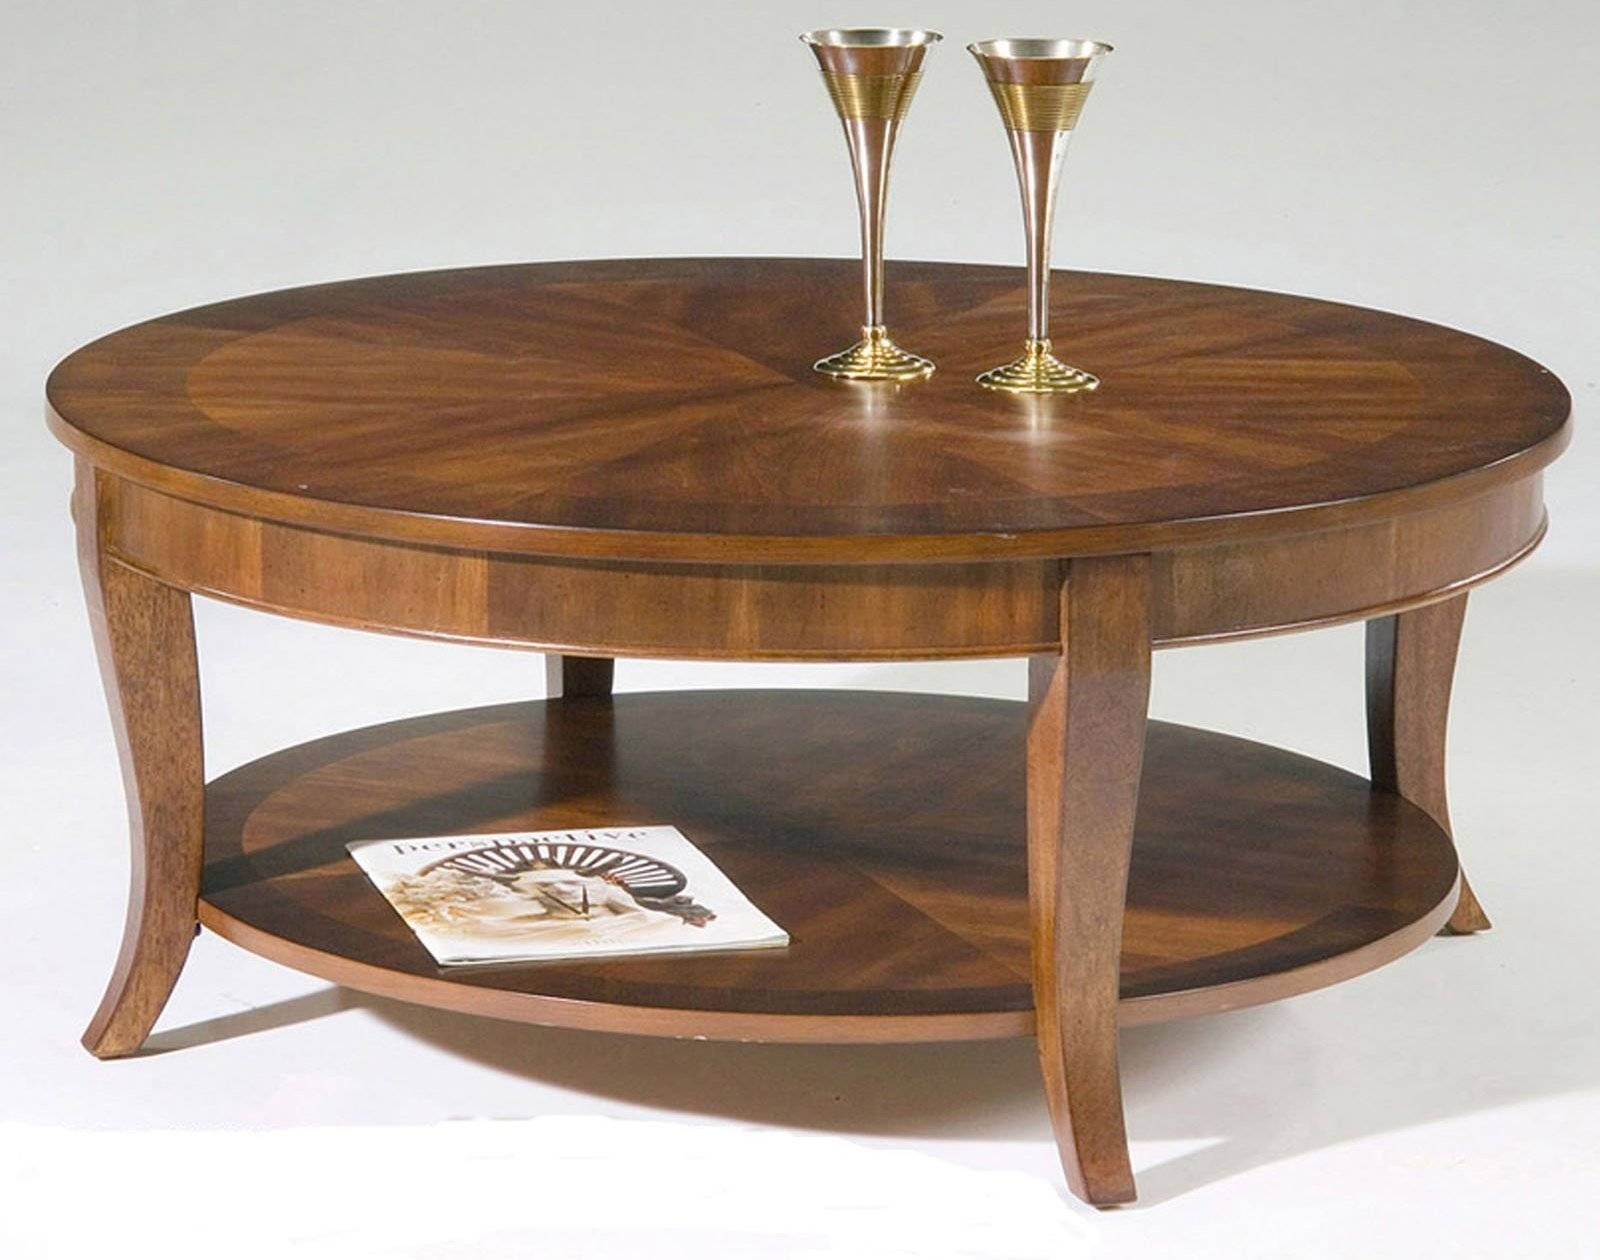 Coffee Table: Simple Round Coffee Table Designs Small Round Coffee for Small Circle Coffee Tables (Image 7 of 30)